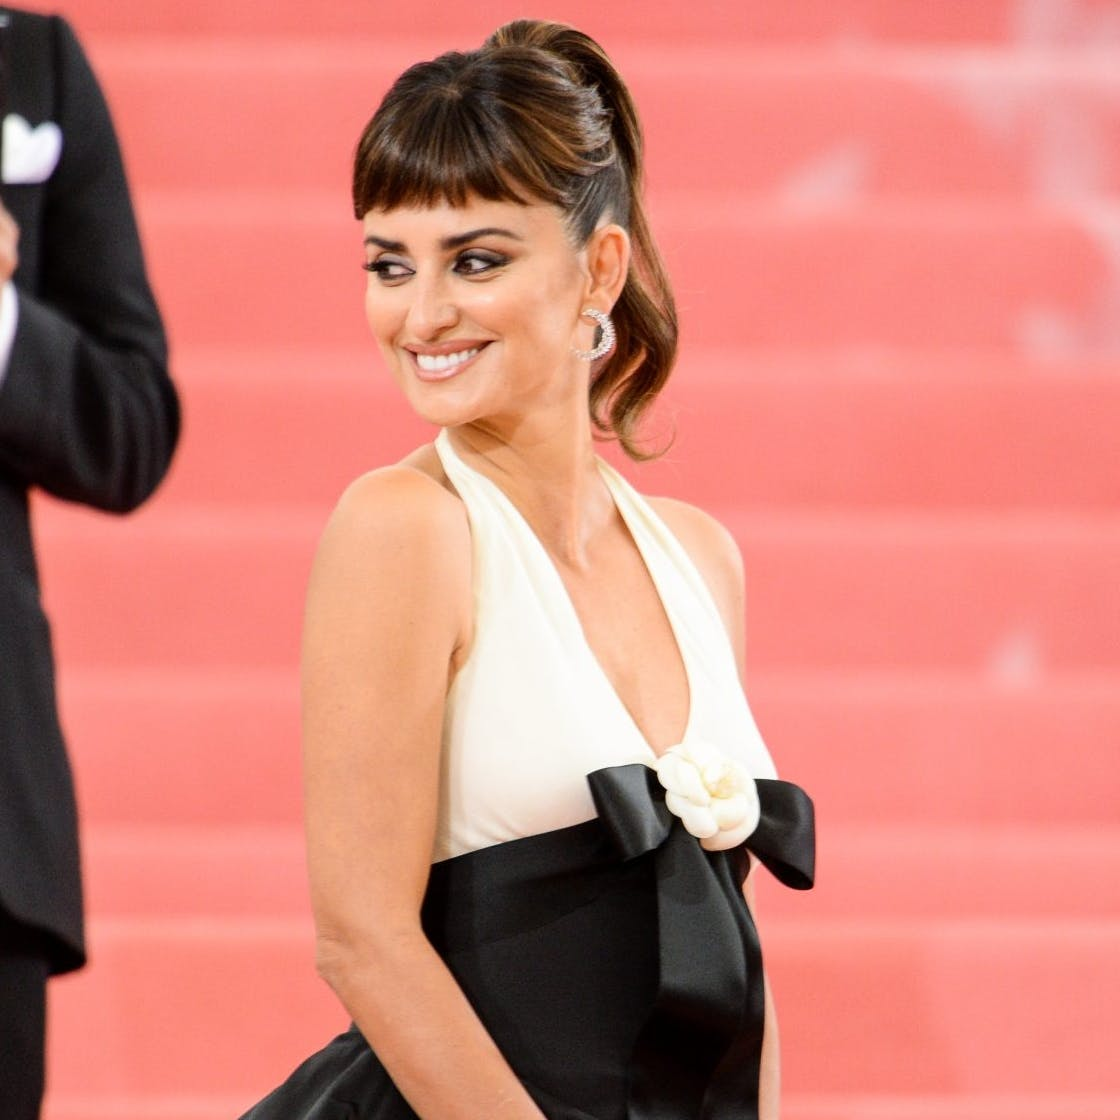 Celebrity Hair Inspiration: The Best Fringes And Bangs